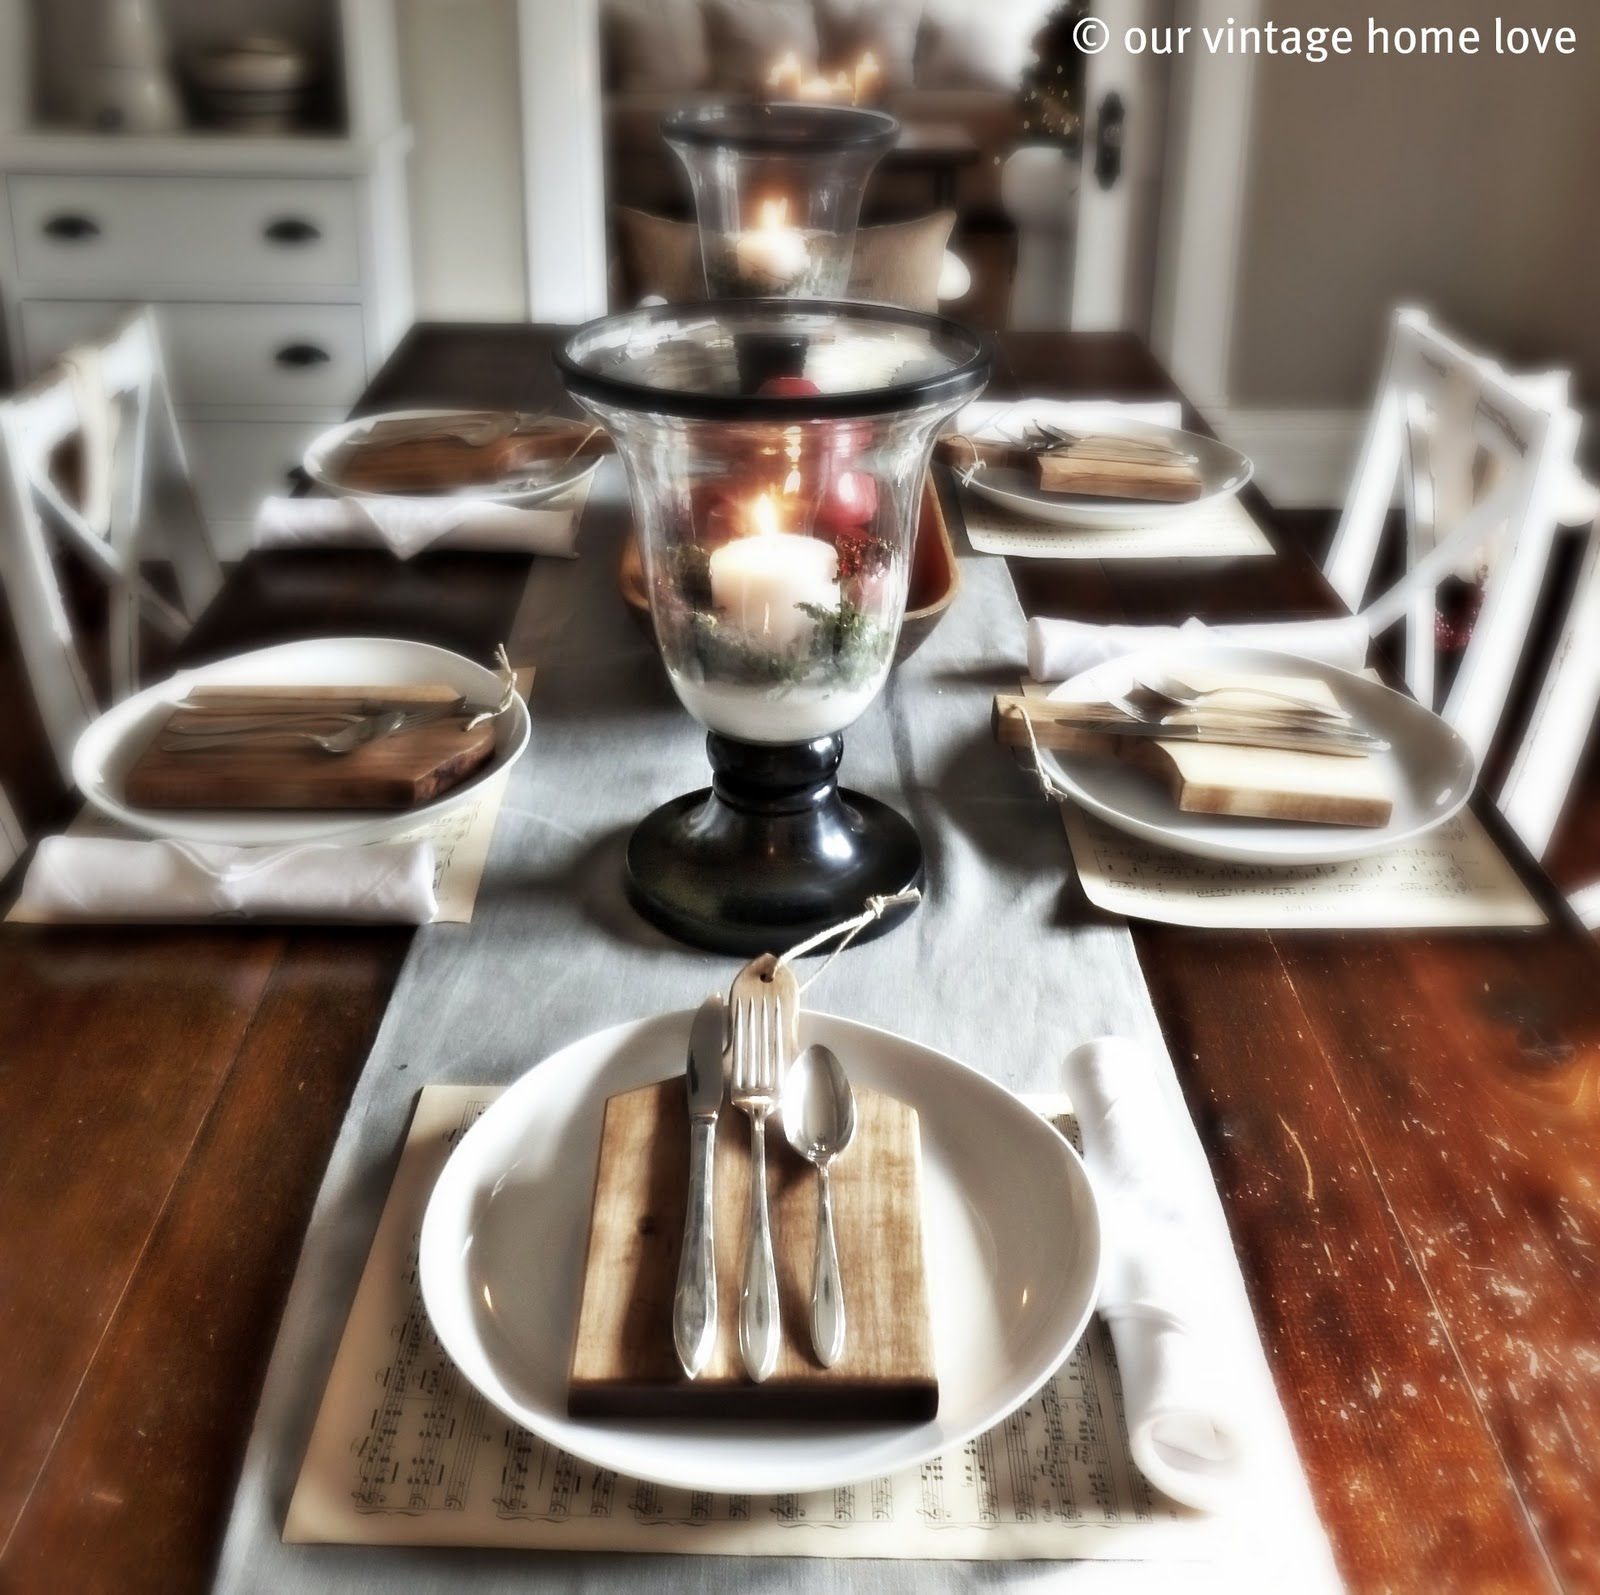 Christmas Table Decor Ideas & vintage home love: Christmas Table Decor Ideas